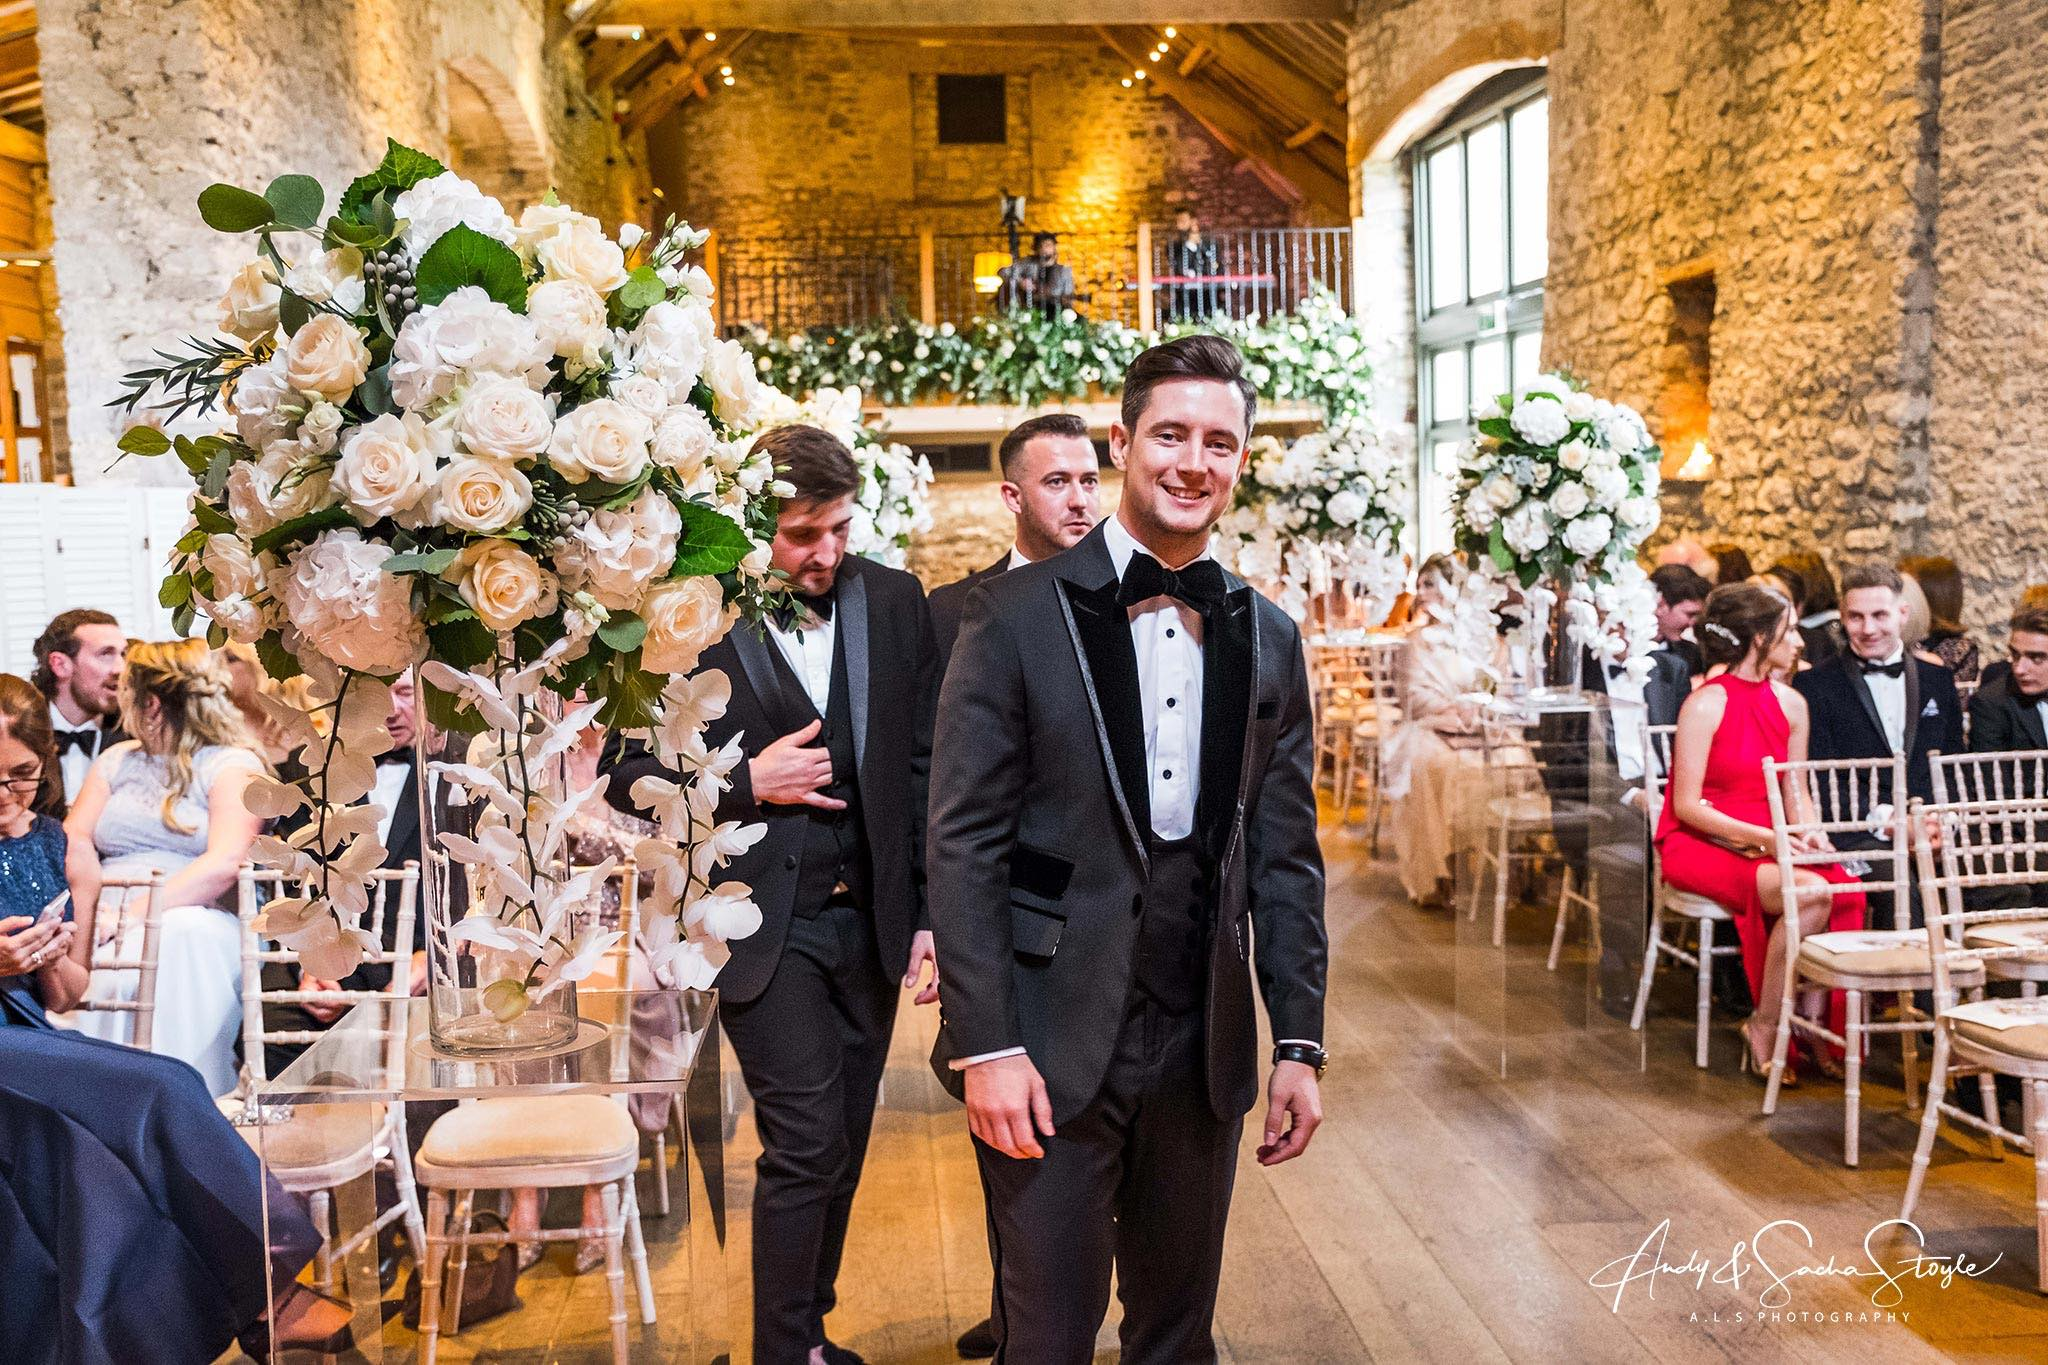 Wedding Flowers - Flowers of Bath - Tythe Barn - Priston Mill - ALS Photography